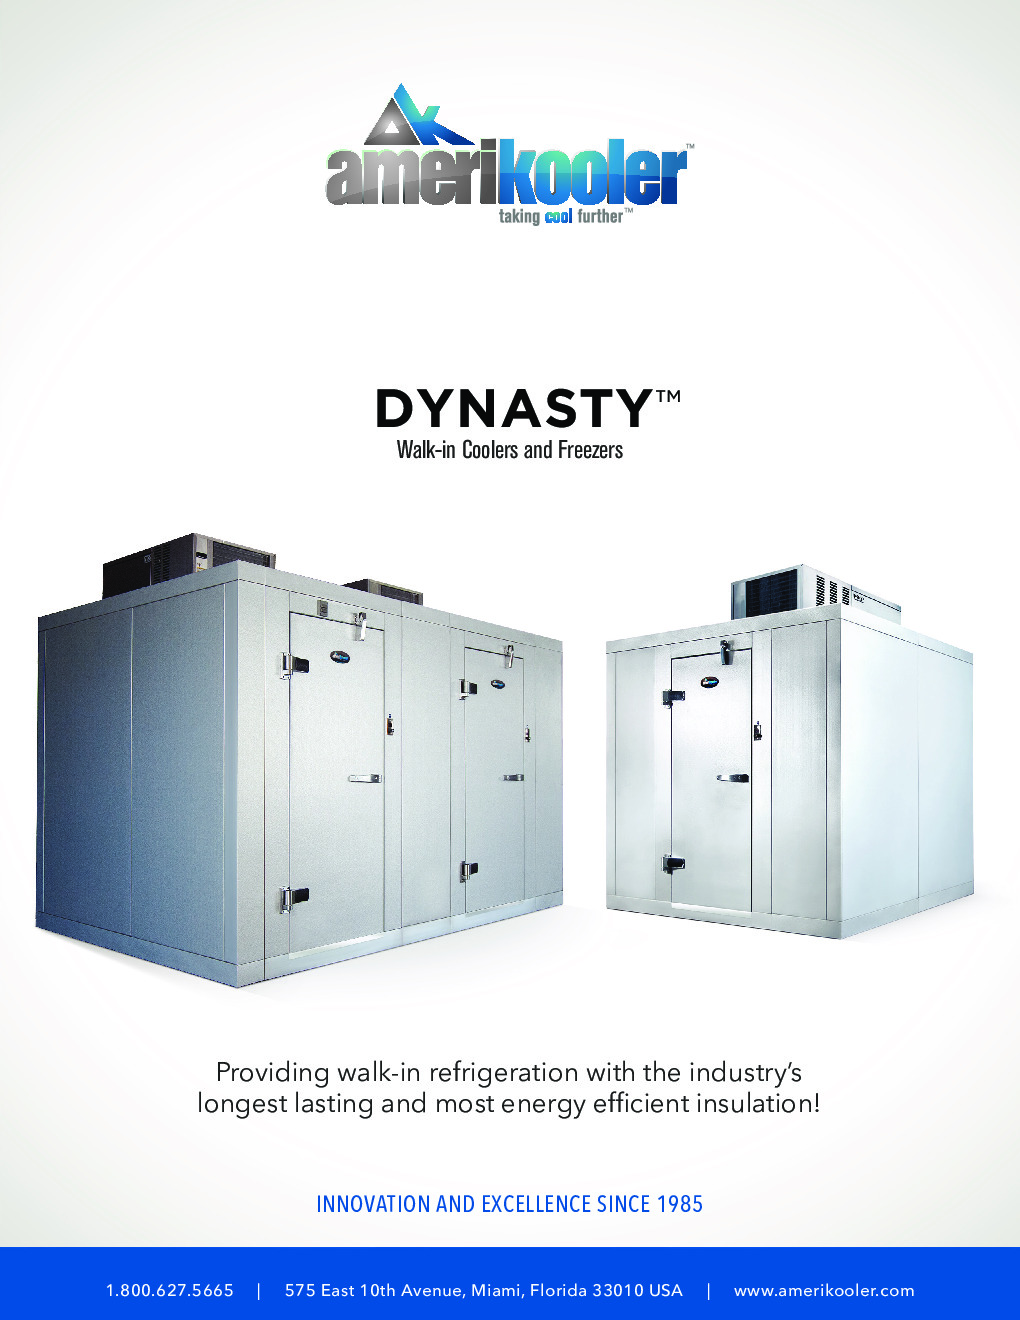 AmeriKooler DW080977N-4/5-SC 8' X 9' Walk-In Cooler, 5' L Cooler without Floor and 4' L Freezer, Self Contained